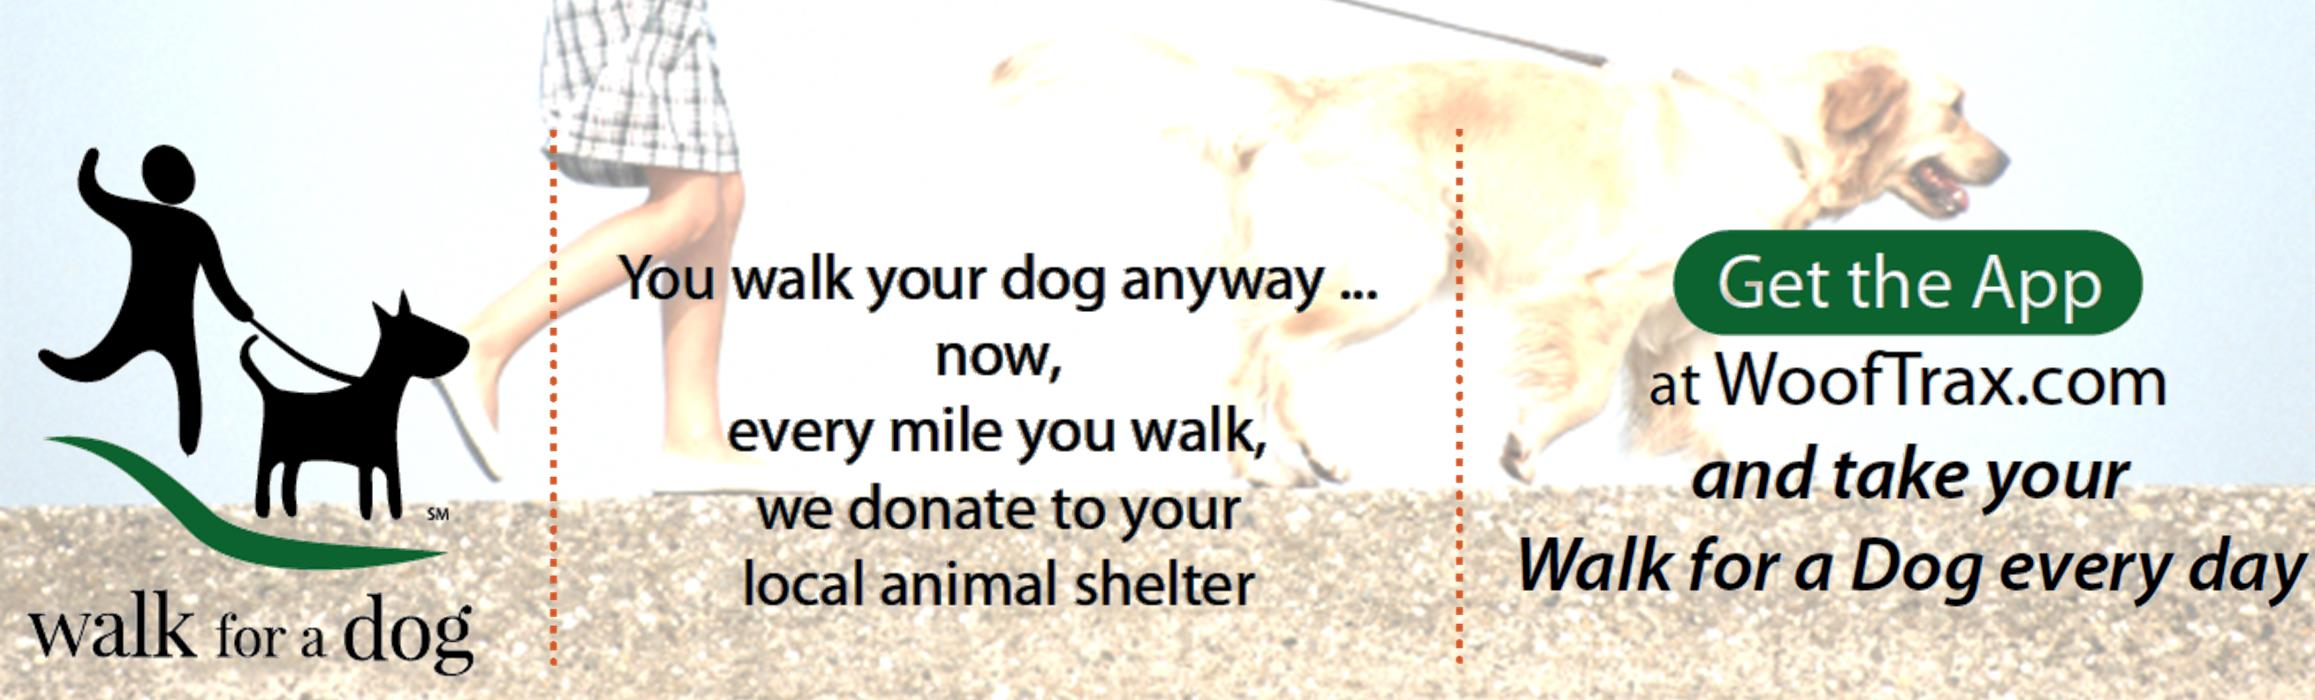 Walk your dog, support Circle of Friends